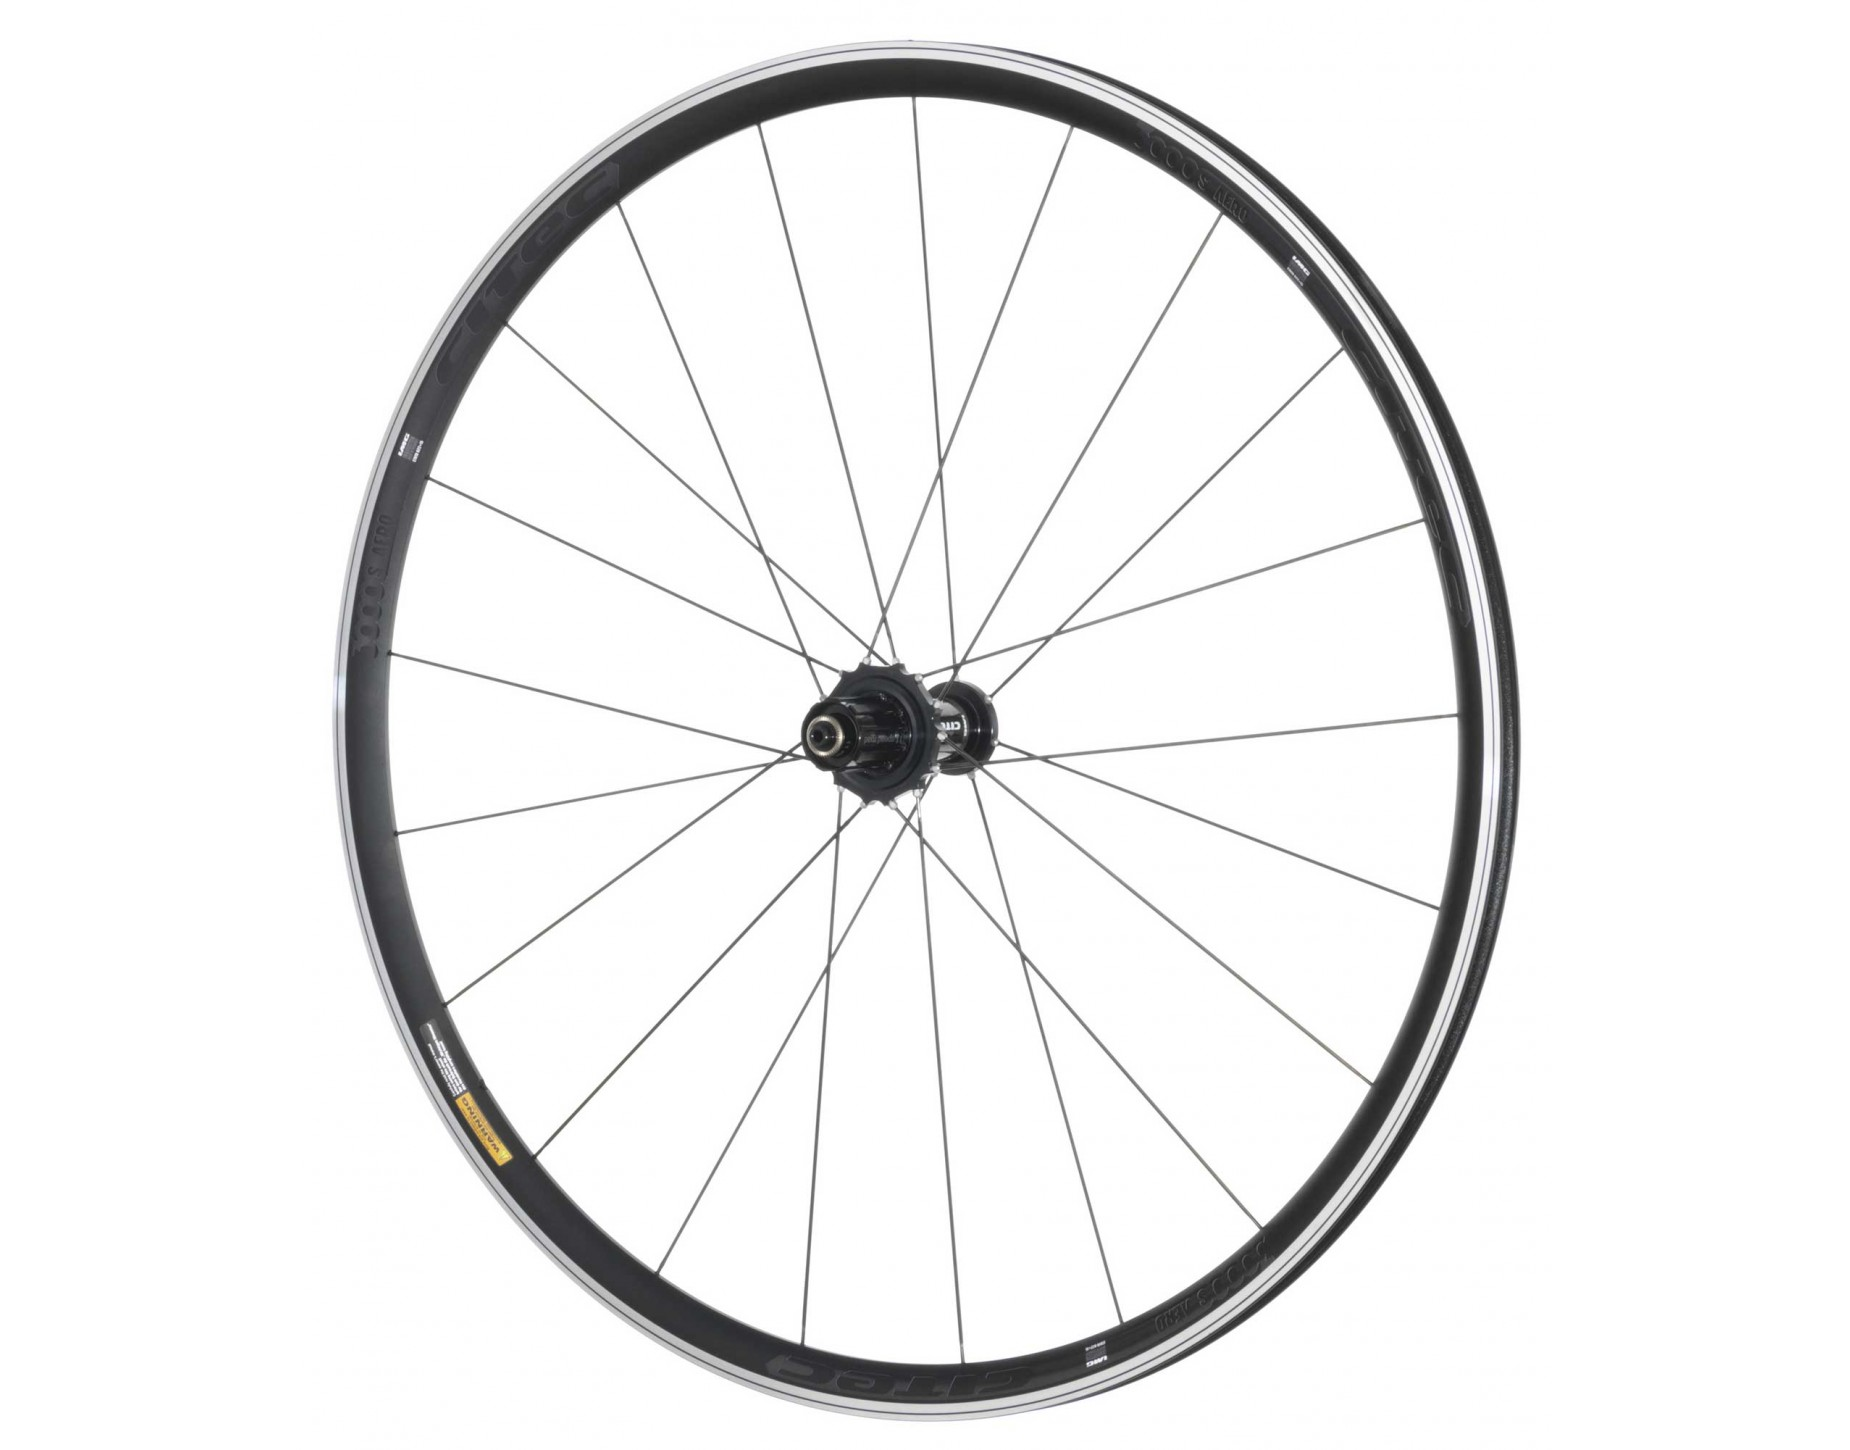 Citec S Aero 28 700c Road Wheels Everything You